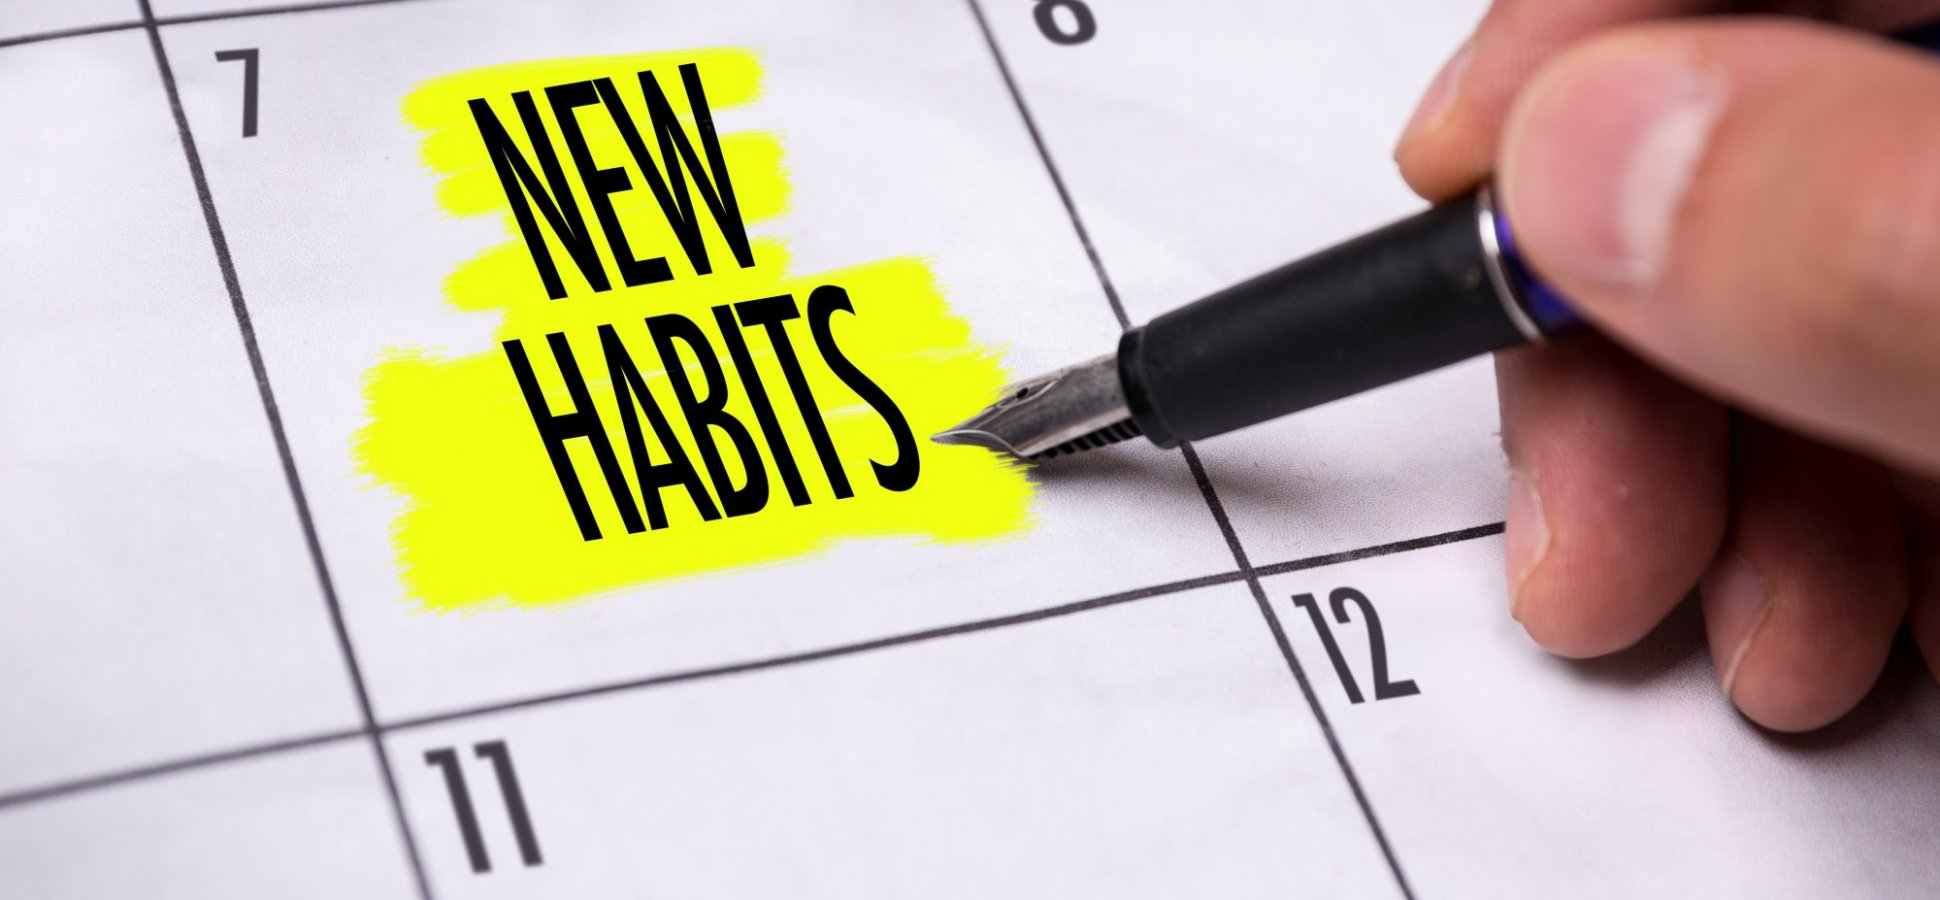 How to Form a New Habit (in 5 Easy Steps)